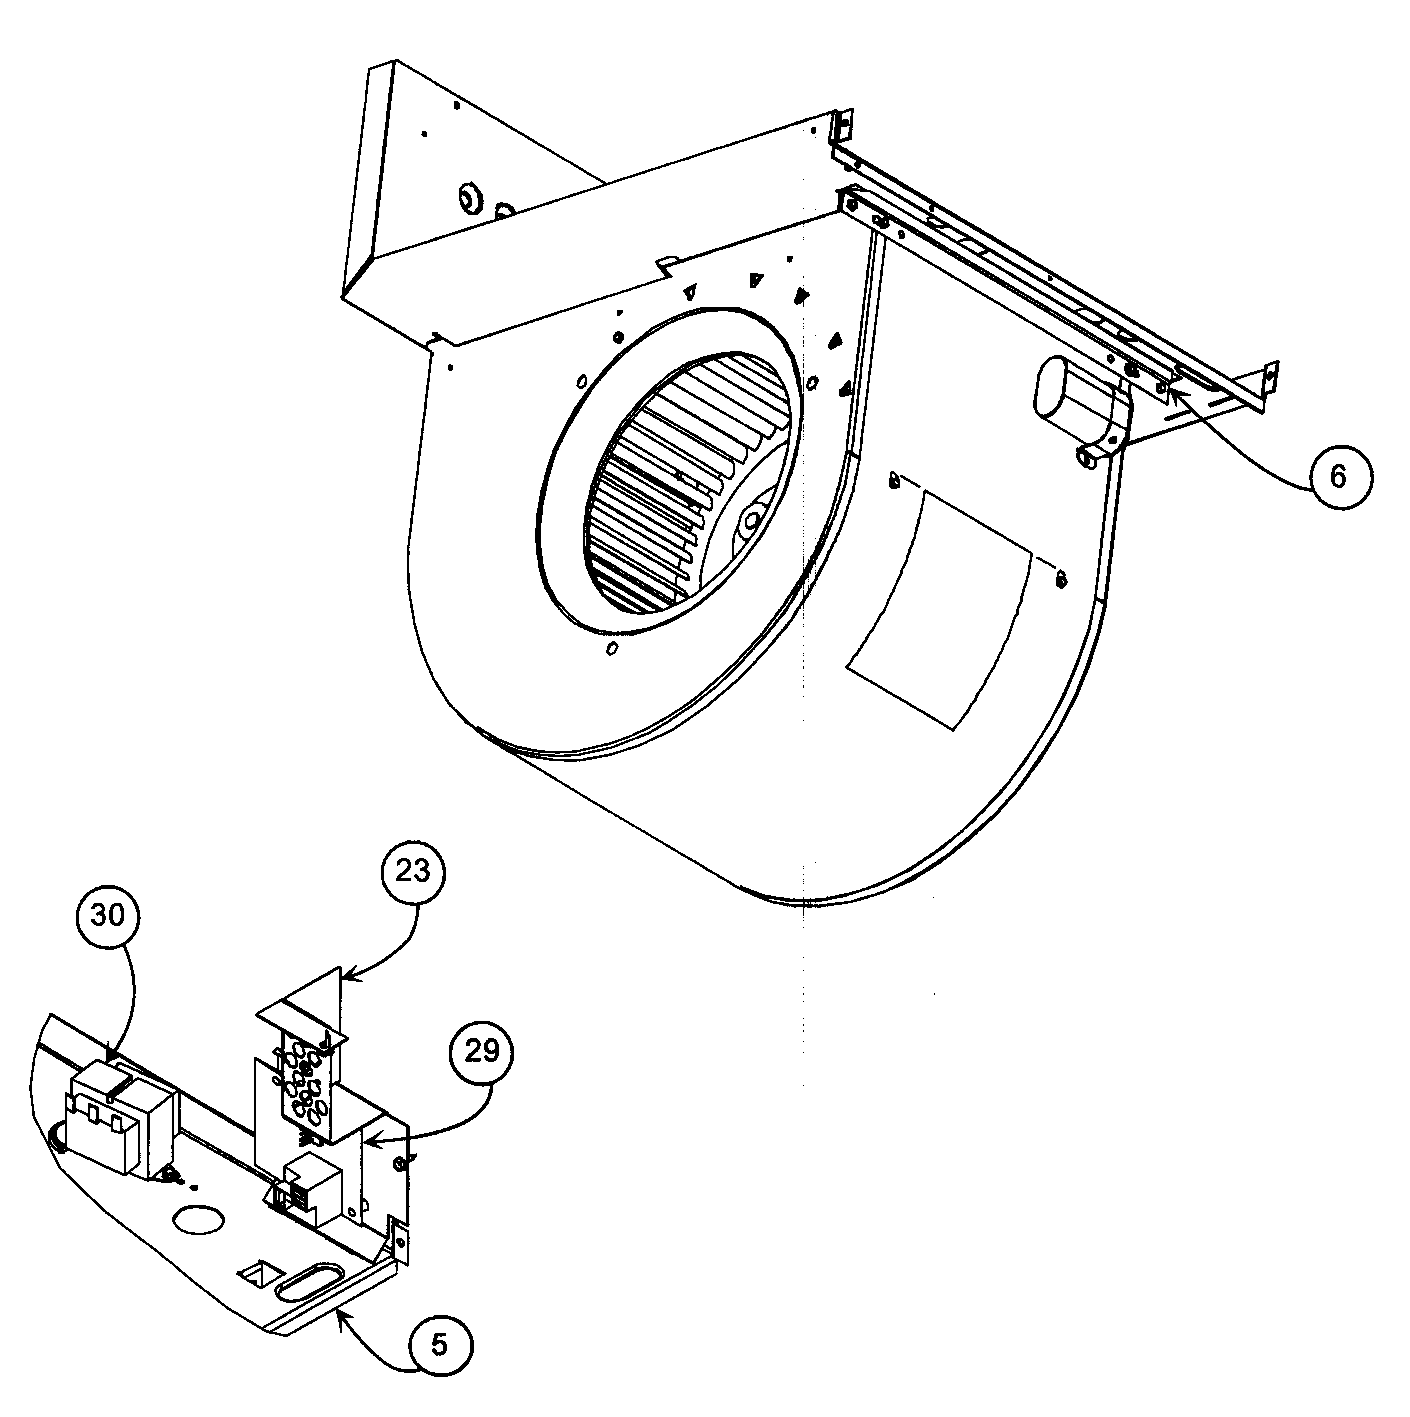 BLOWER ASSY Diagram & Parts List for Model pf1mnc019000